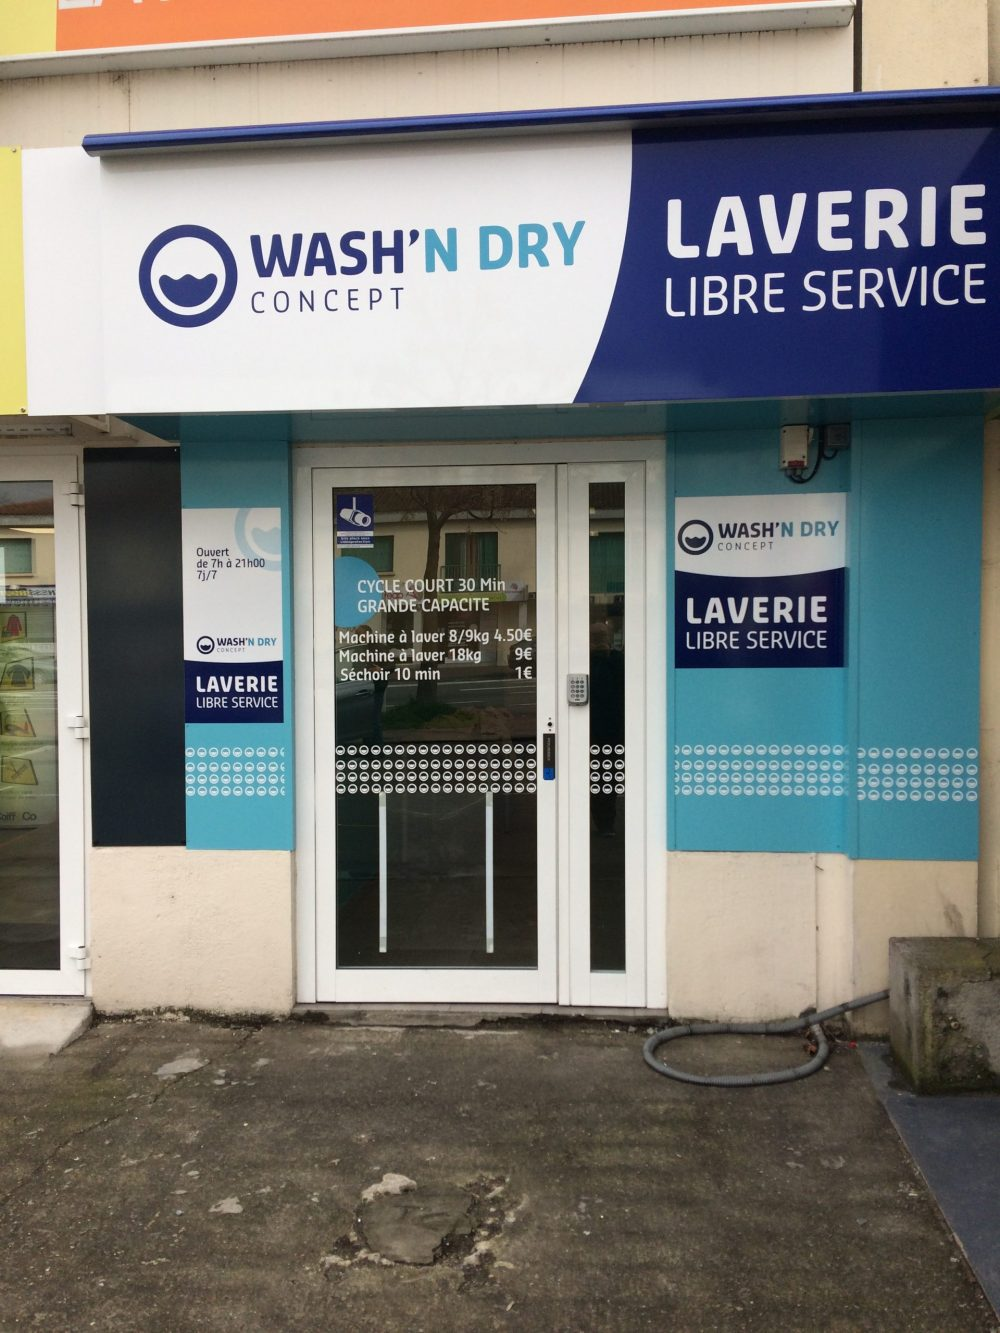 Laverie Wash'n Dry Toulouse - 31